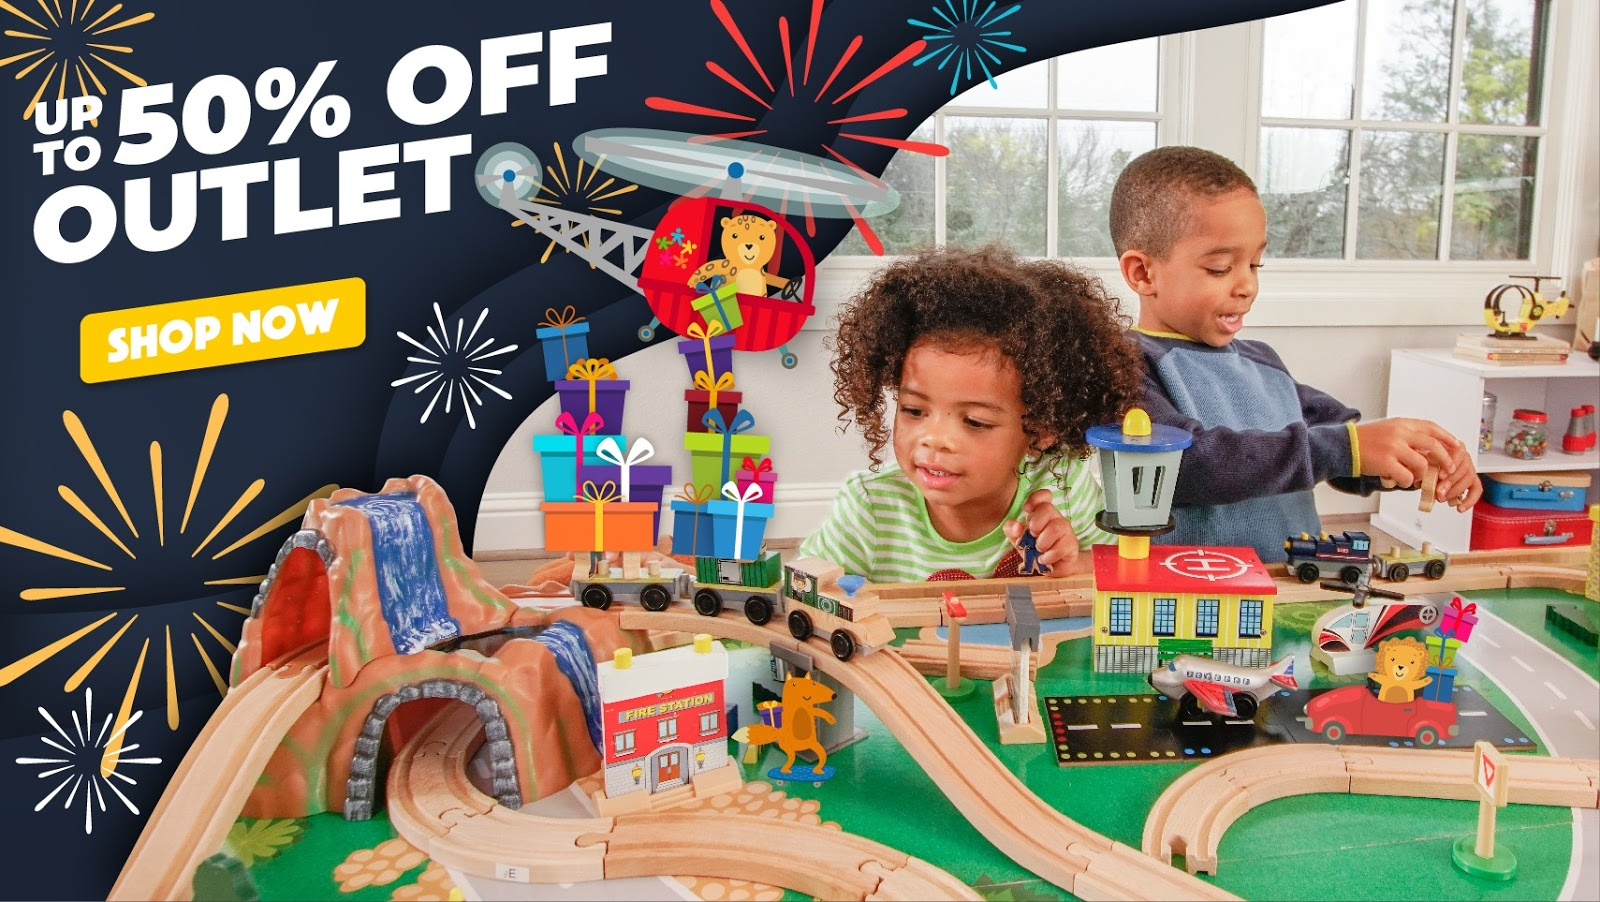 where to find kidkraft deals and offers